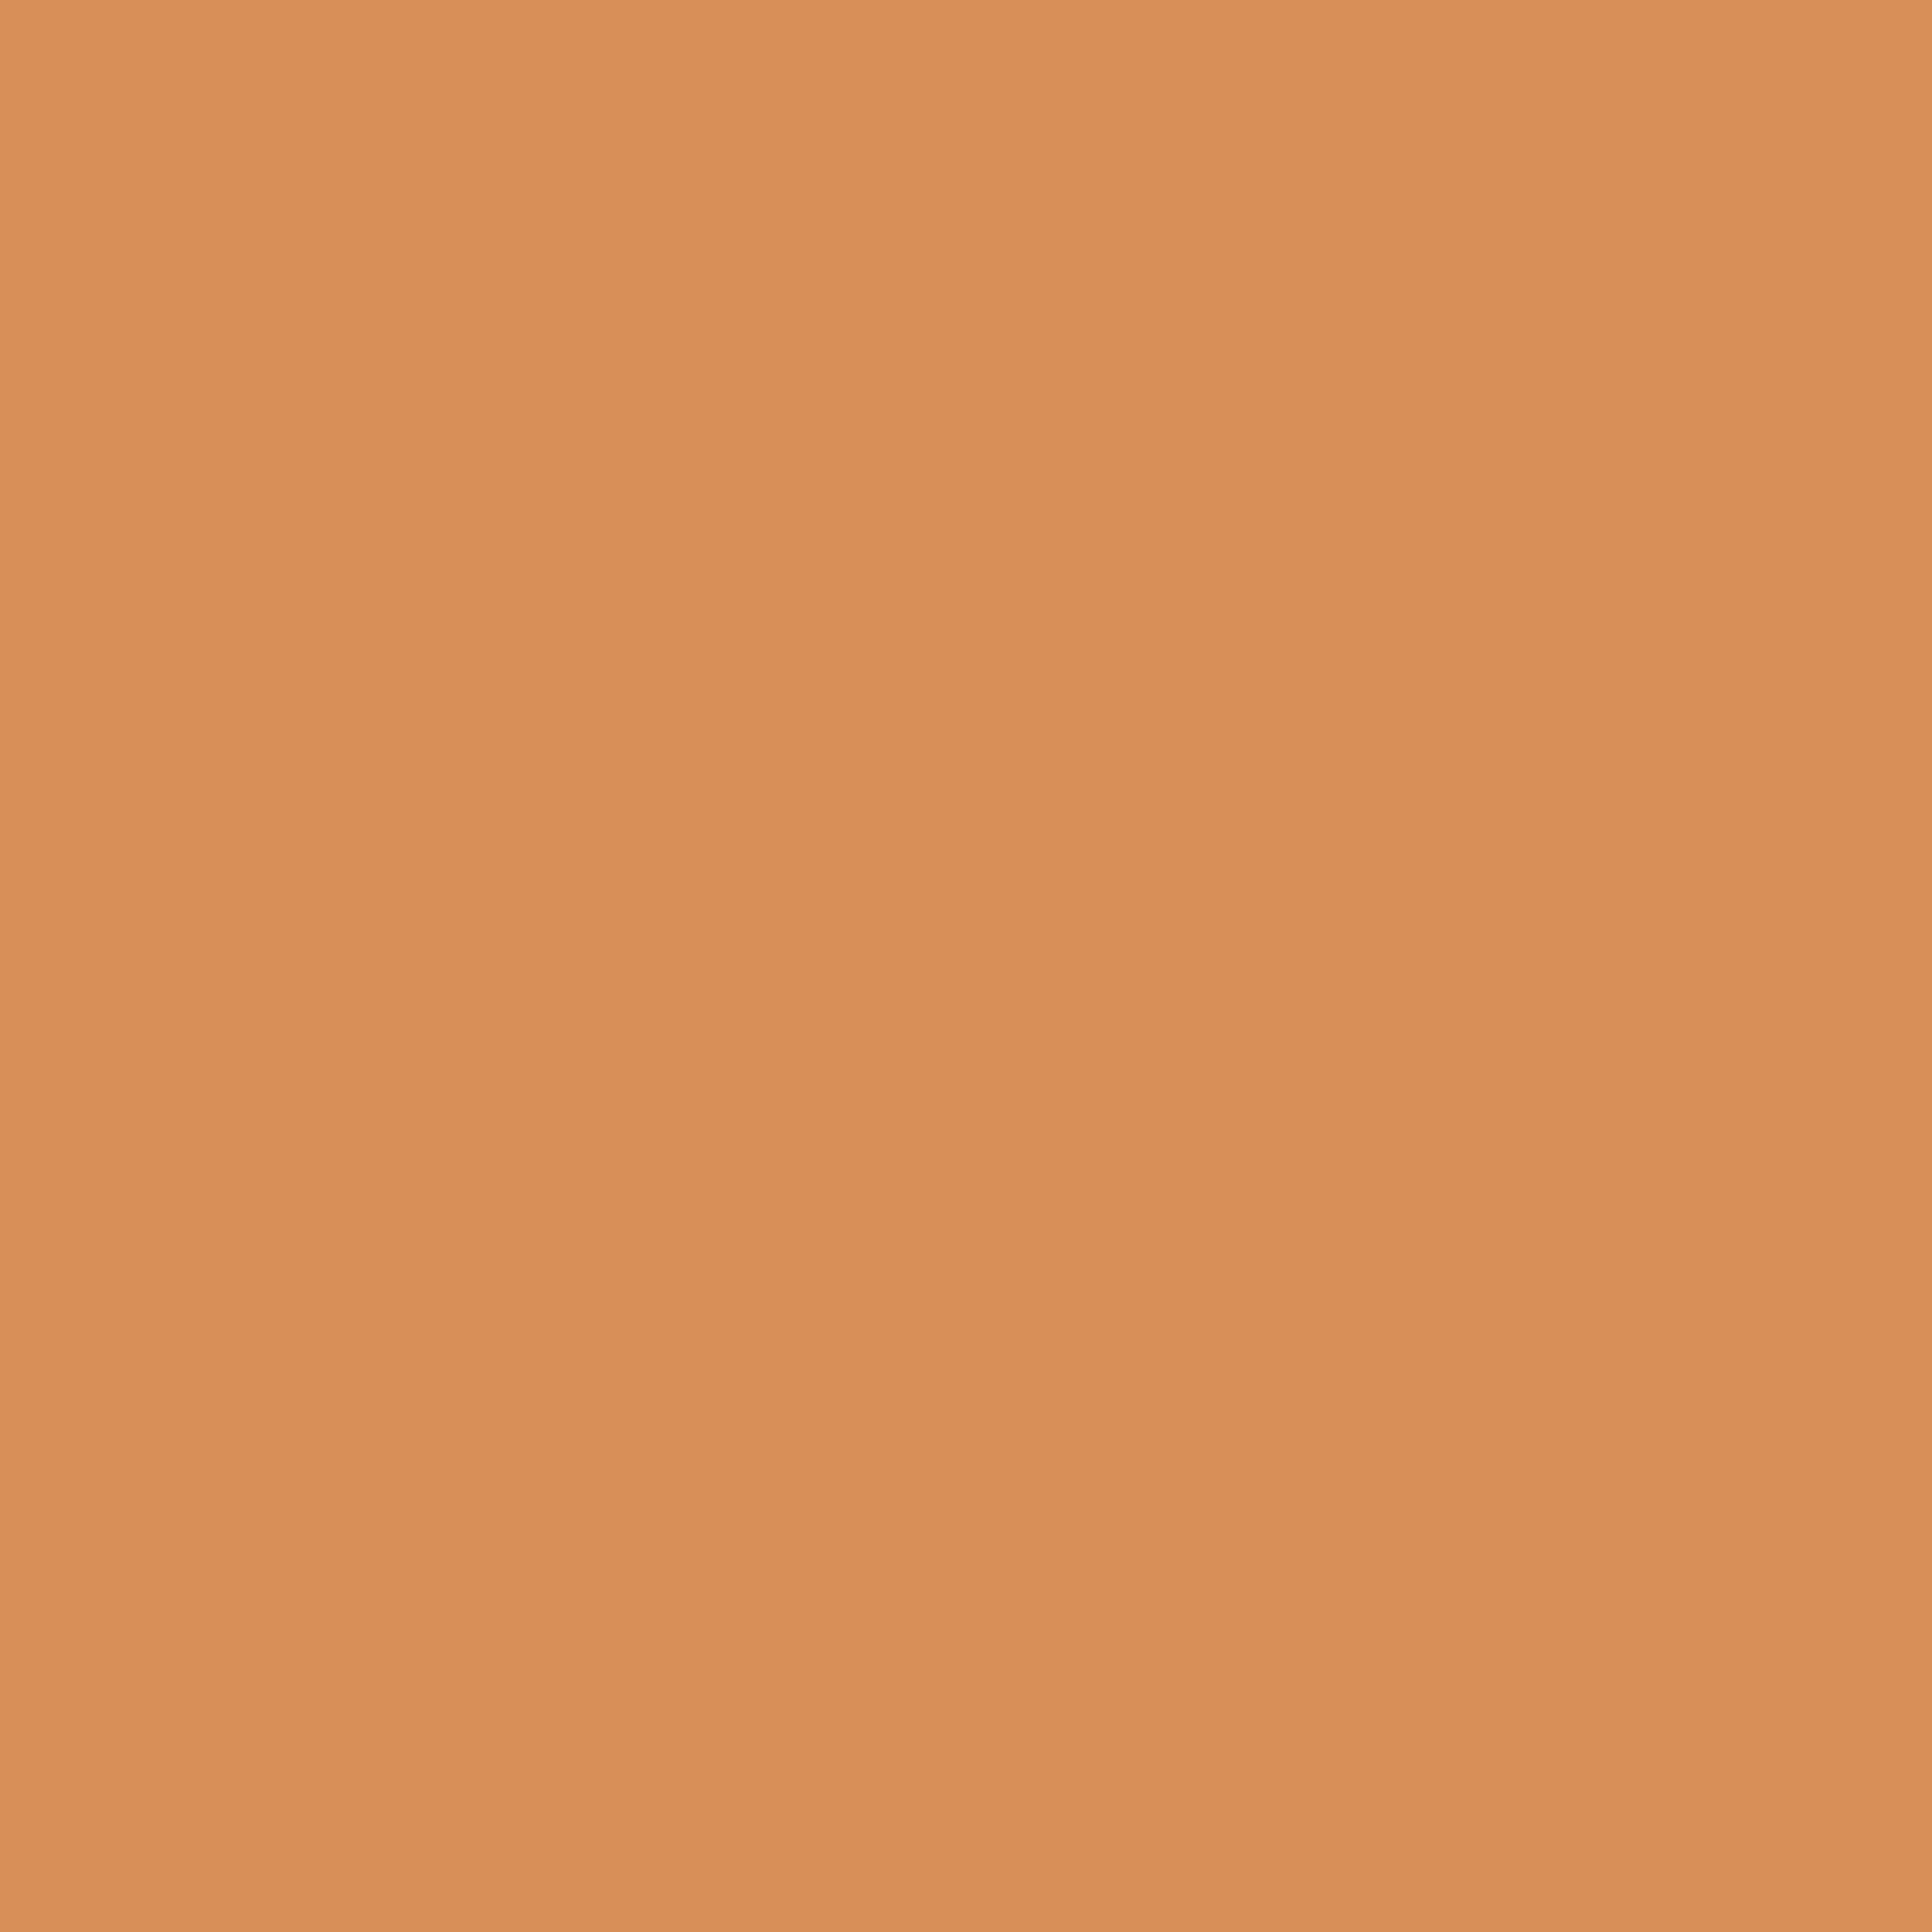 3600x3600 Persian Orange Solid Color Background